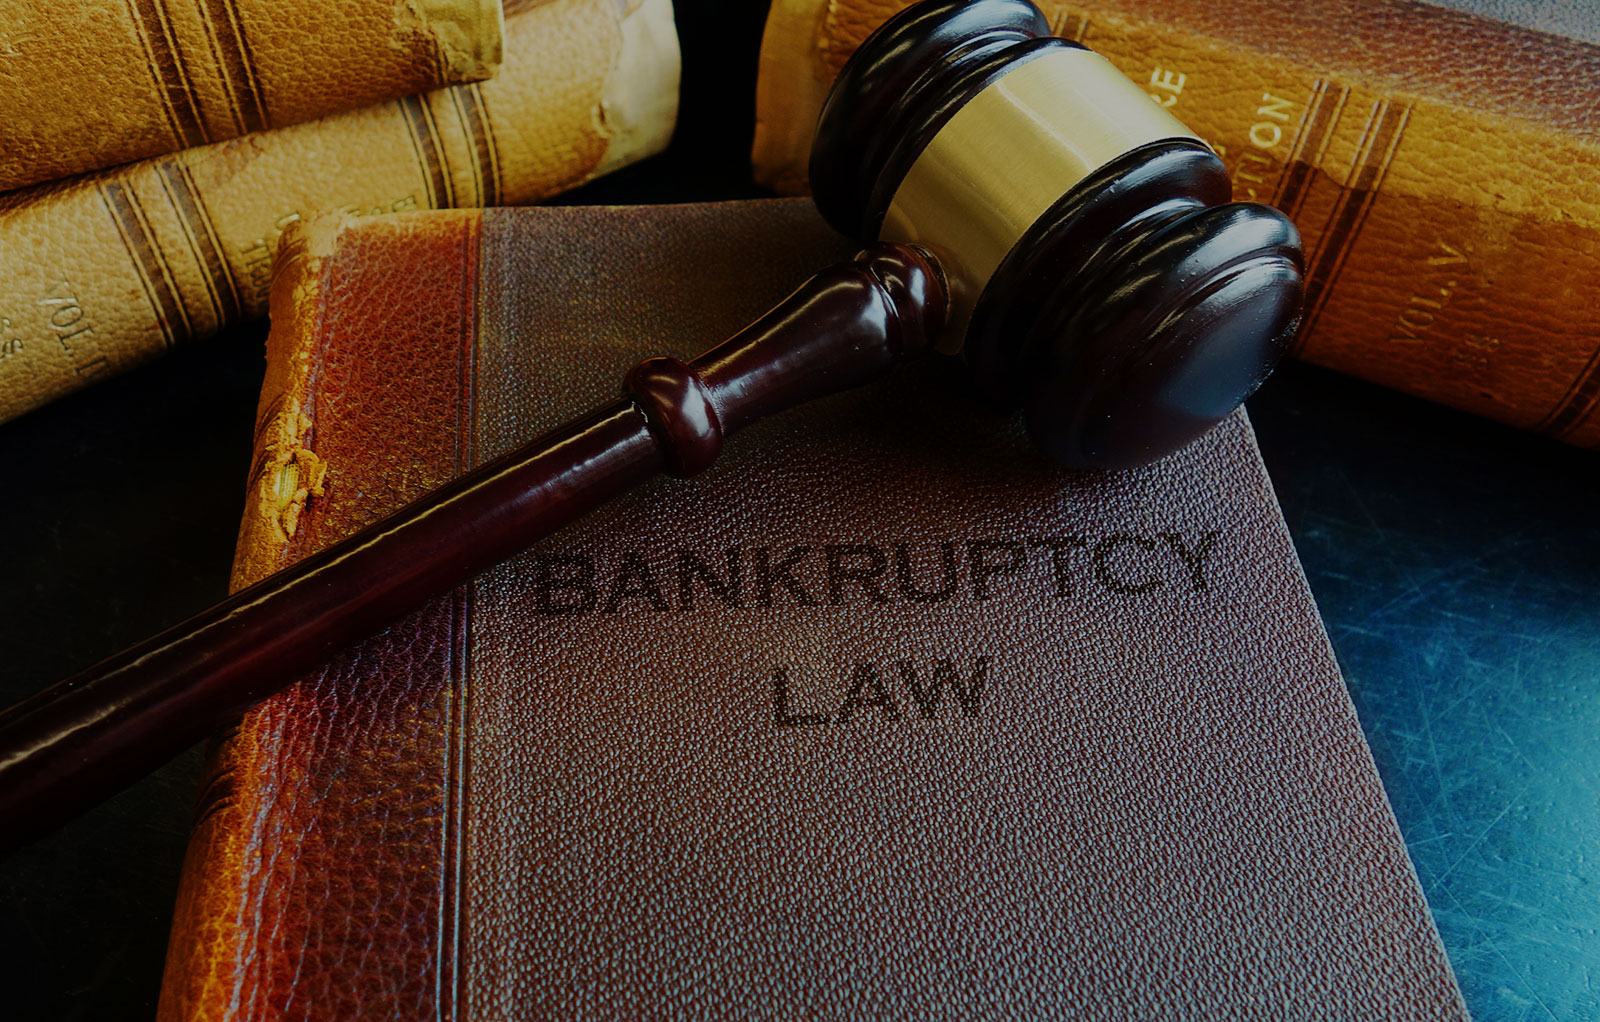 Bankruptcy & Creditor's Rights Header Background - Judge Mallet on Bankruptcy Law Book